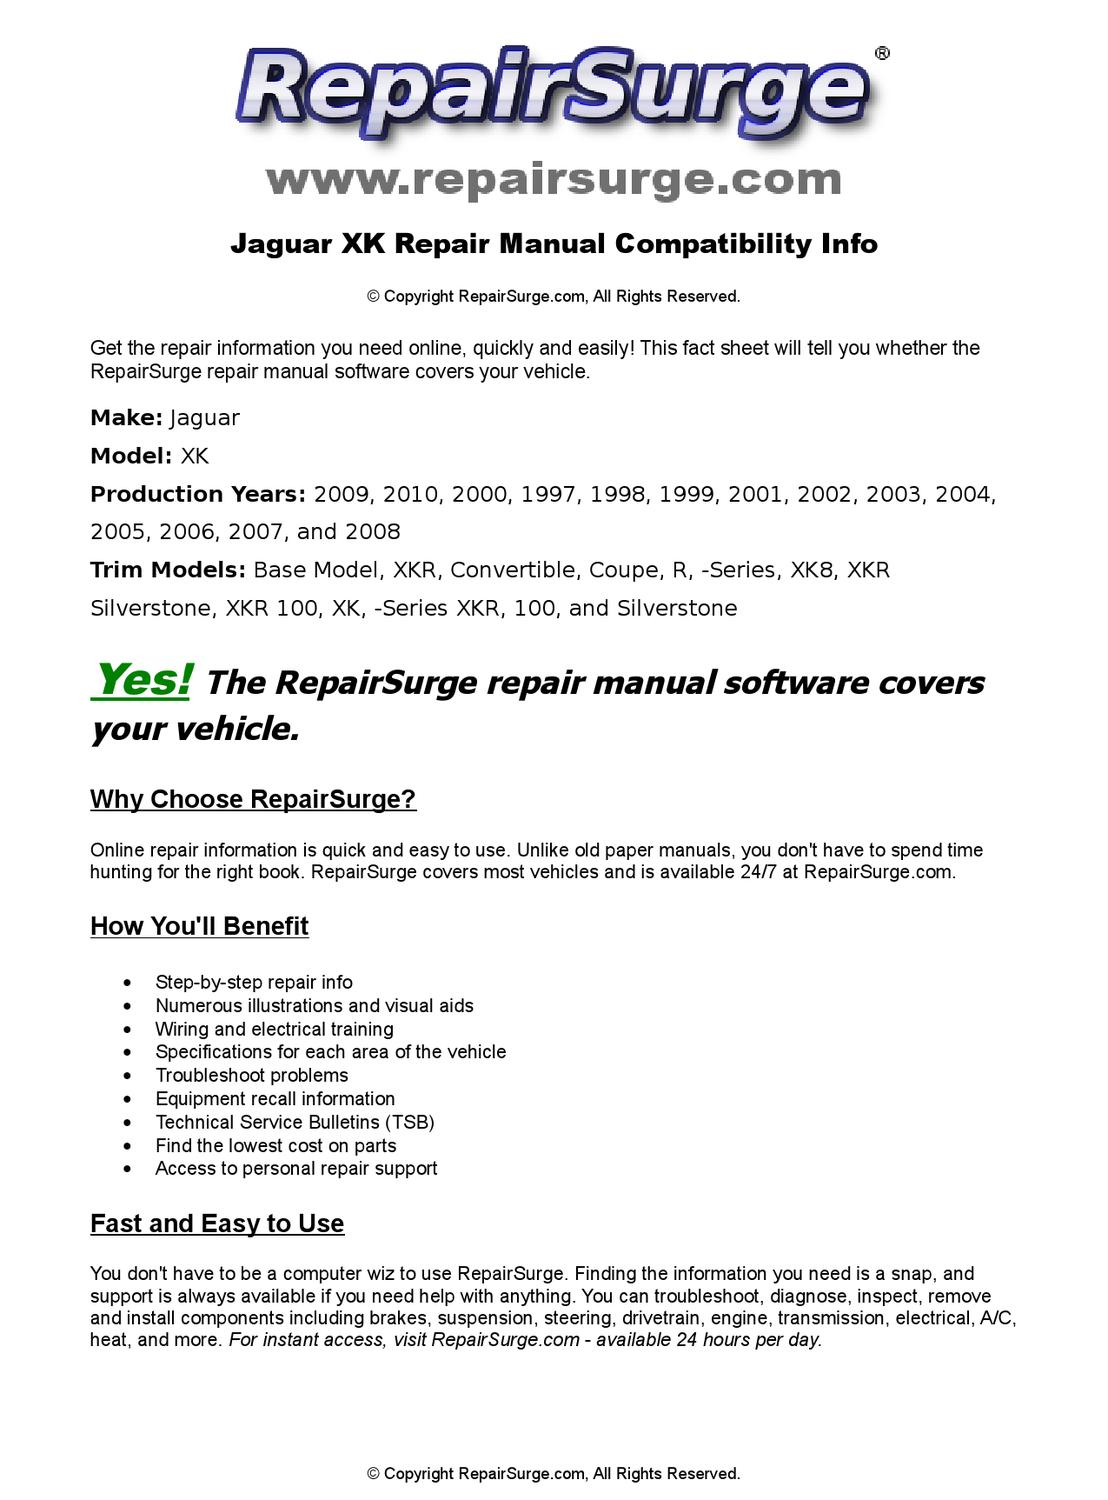 Jaguar XK Online Repair Manual For 2009, 2010, 2000, 1997, 1998, 1999,  2001, 2002, 2003, 2004, 2005, by RepairSurge - issuu